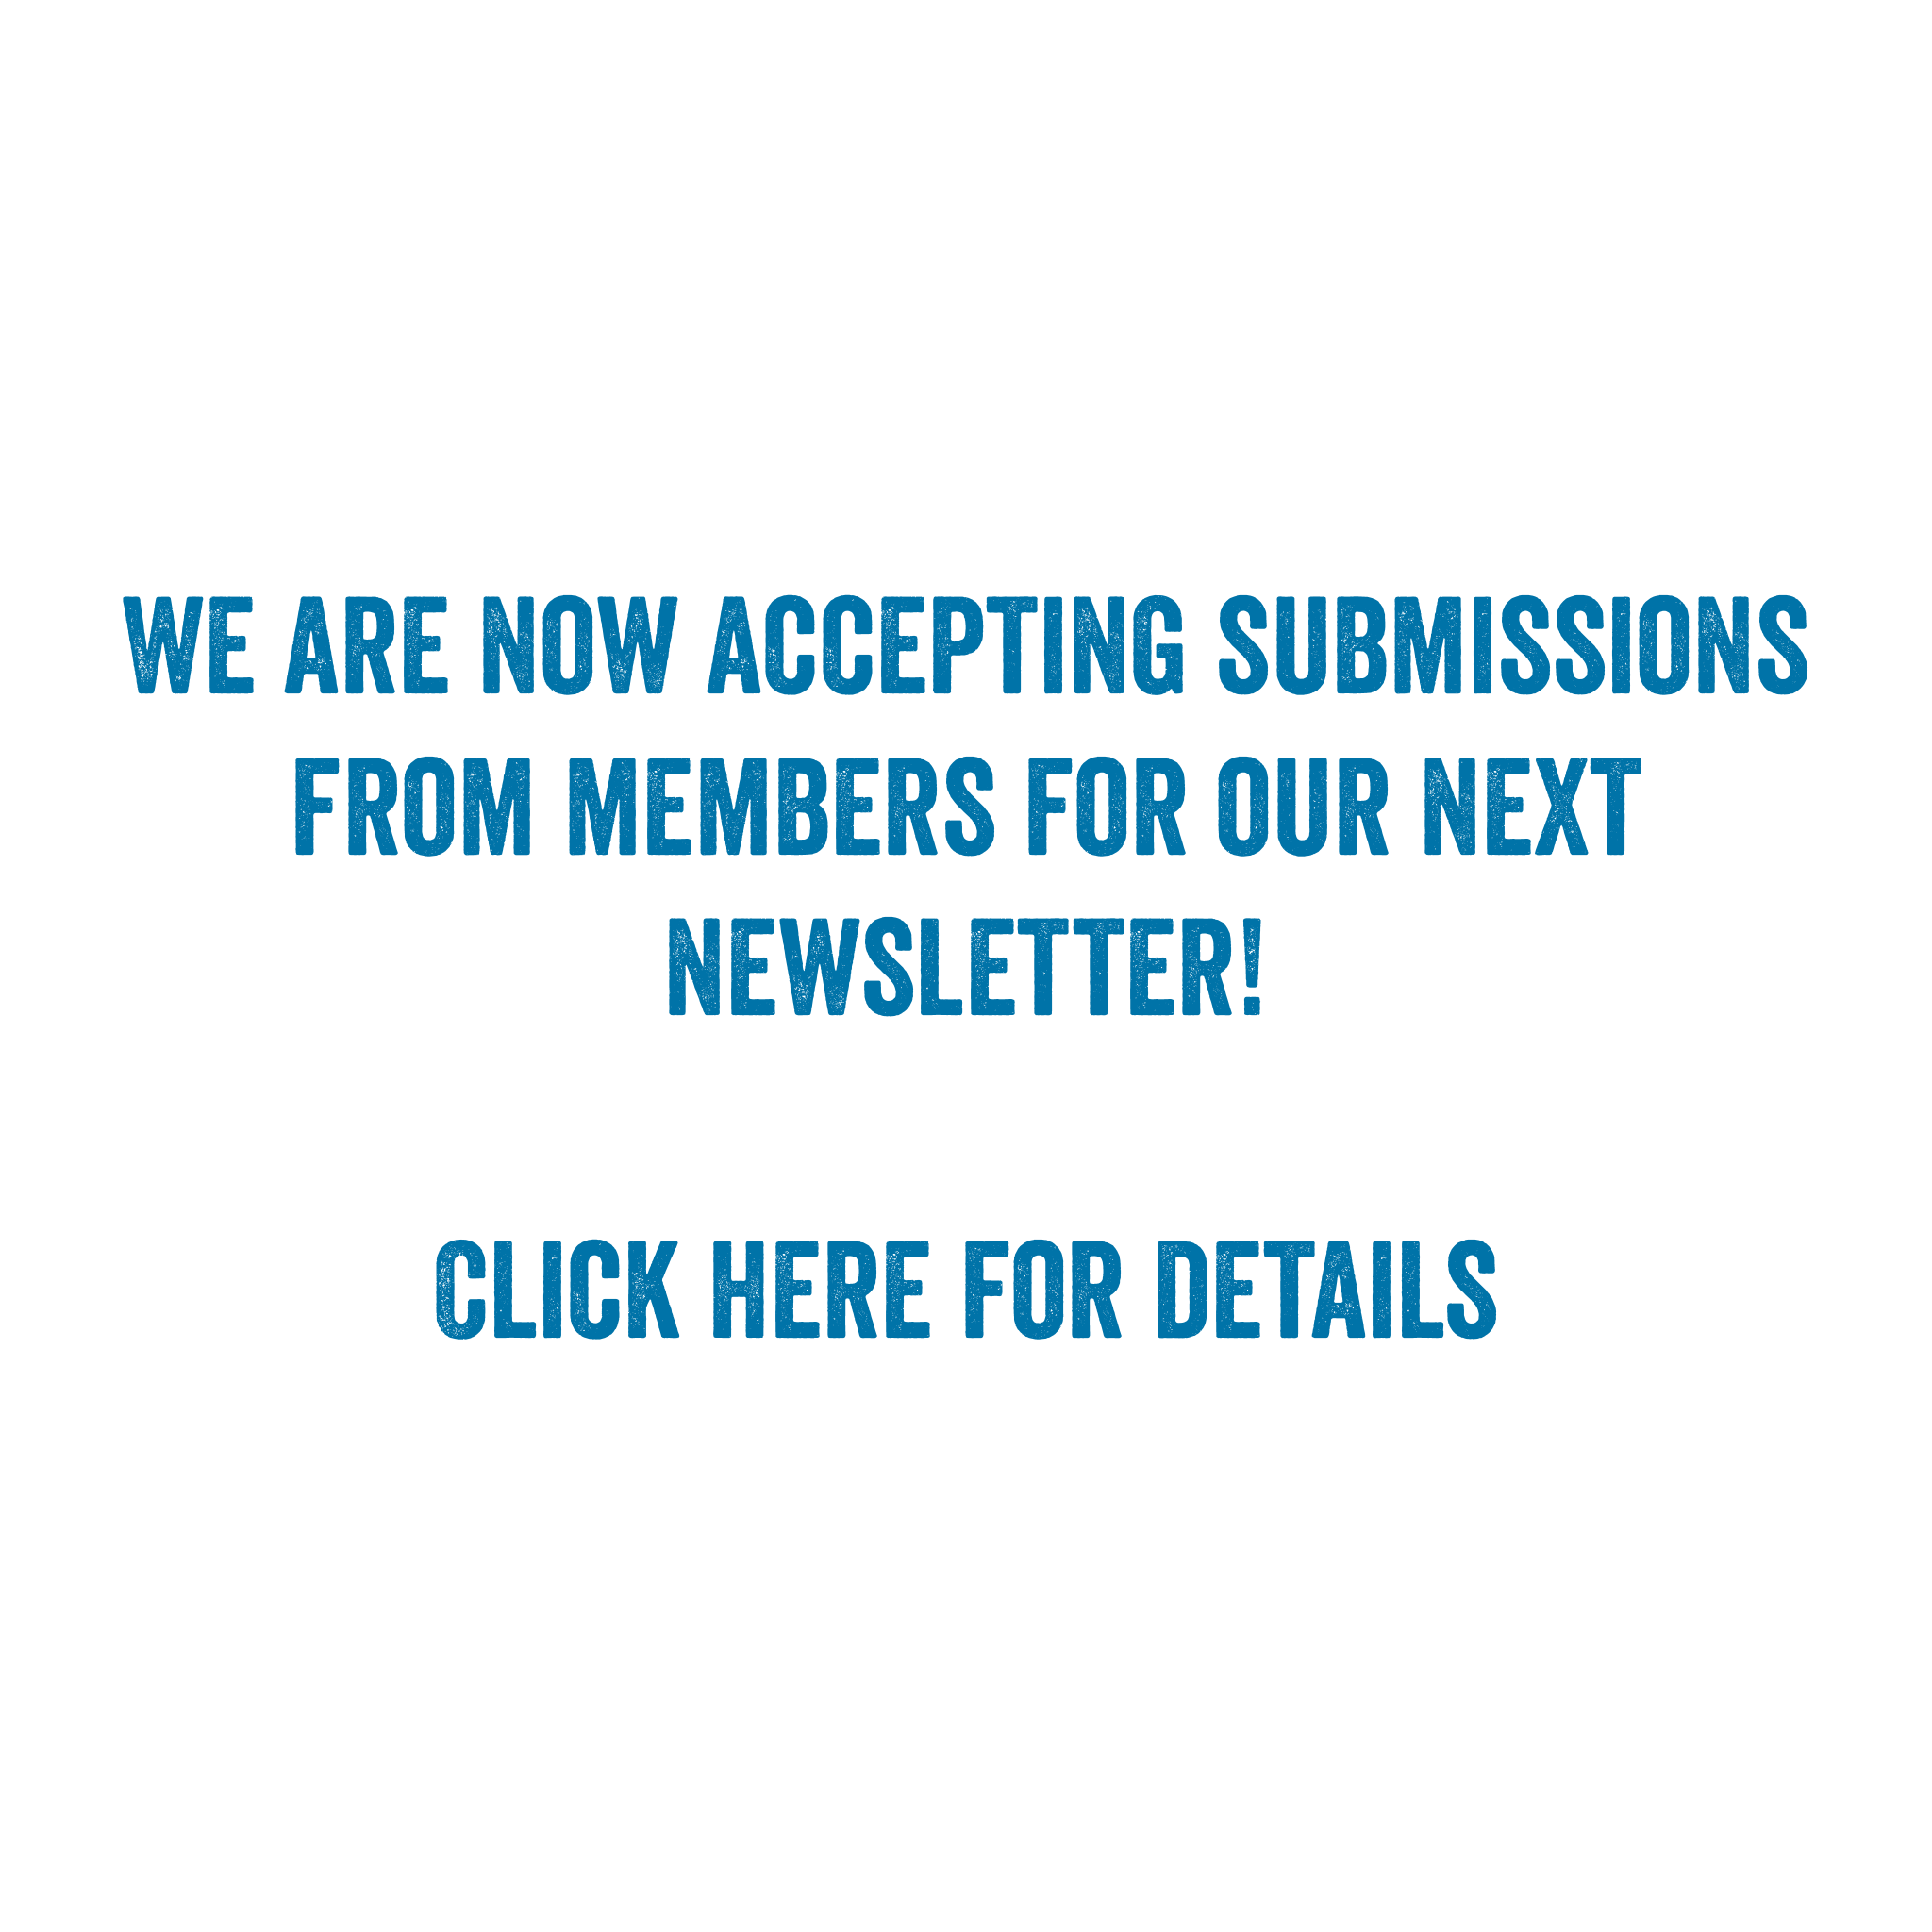 We are now accepting submissions from members for our next newsletter! DEADLINE: May 1, 2019 DETAILS: to cover submissions for the period since fall 2018 Submissions MUST be mailed to canadawest@scbwi.org and indicate NEWSLETTER in subject header. WE ACCEPT MEMBER SUBMISSIONS FOR: Good News – e.g. for your recent/upcoming books/successes; max. 75 words; include your book cover thumbnail Critique Group News Short Articles (max. 500 words, e.g., reports on conferences attended, profiles, interviews, notes on technique/craft, book reviews on technique/craft) Announcements – e.g. member book launches, upcoming events Photos; spot illustrations in colour or B&W We do not currently accept any business announcements SUBMISSION FORMAT: Please name your file(s) with a heading and your name; example format: GoodNews_Potter_Harry_ 01.jpg LAStory_Granger_Hermione.doc For all submissions, please include your full name and a